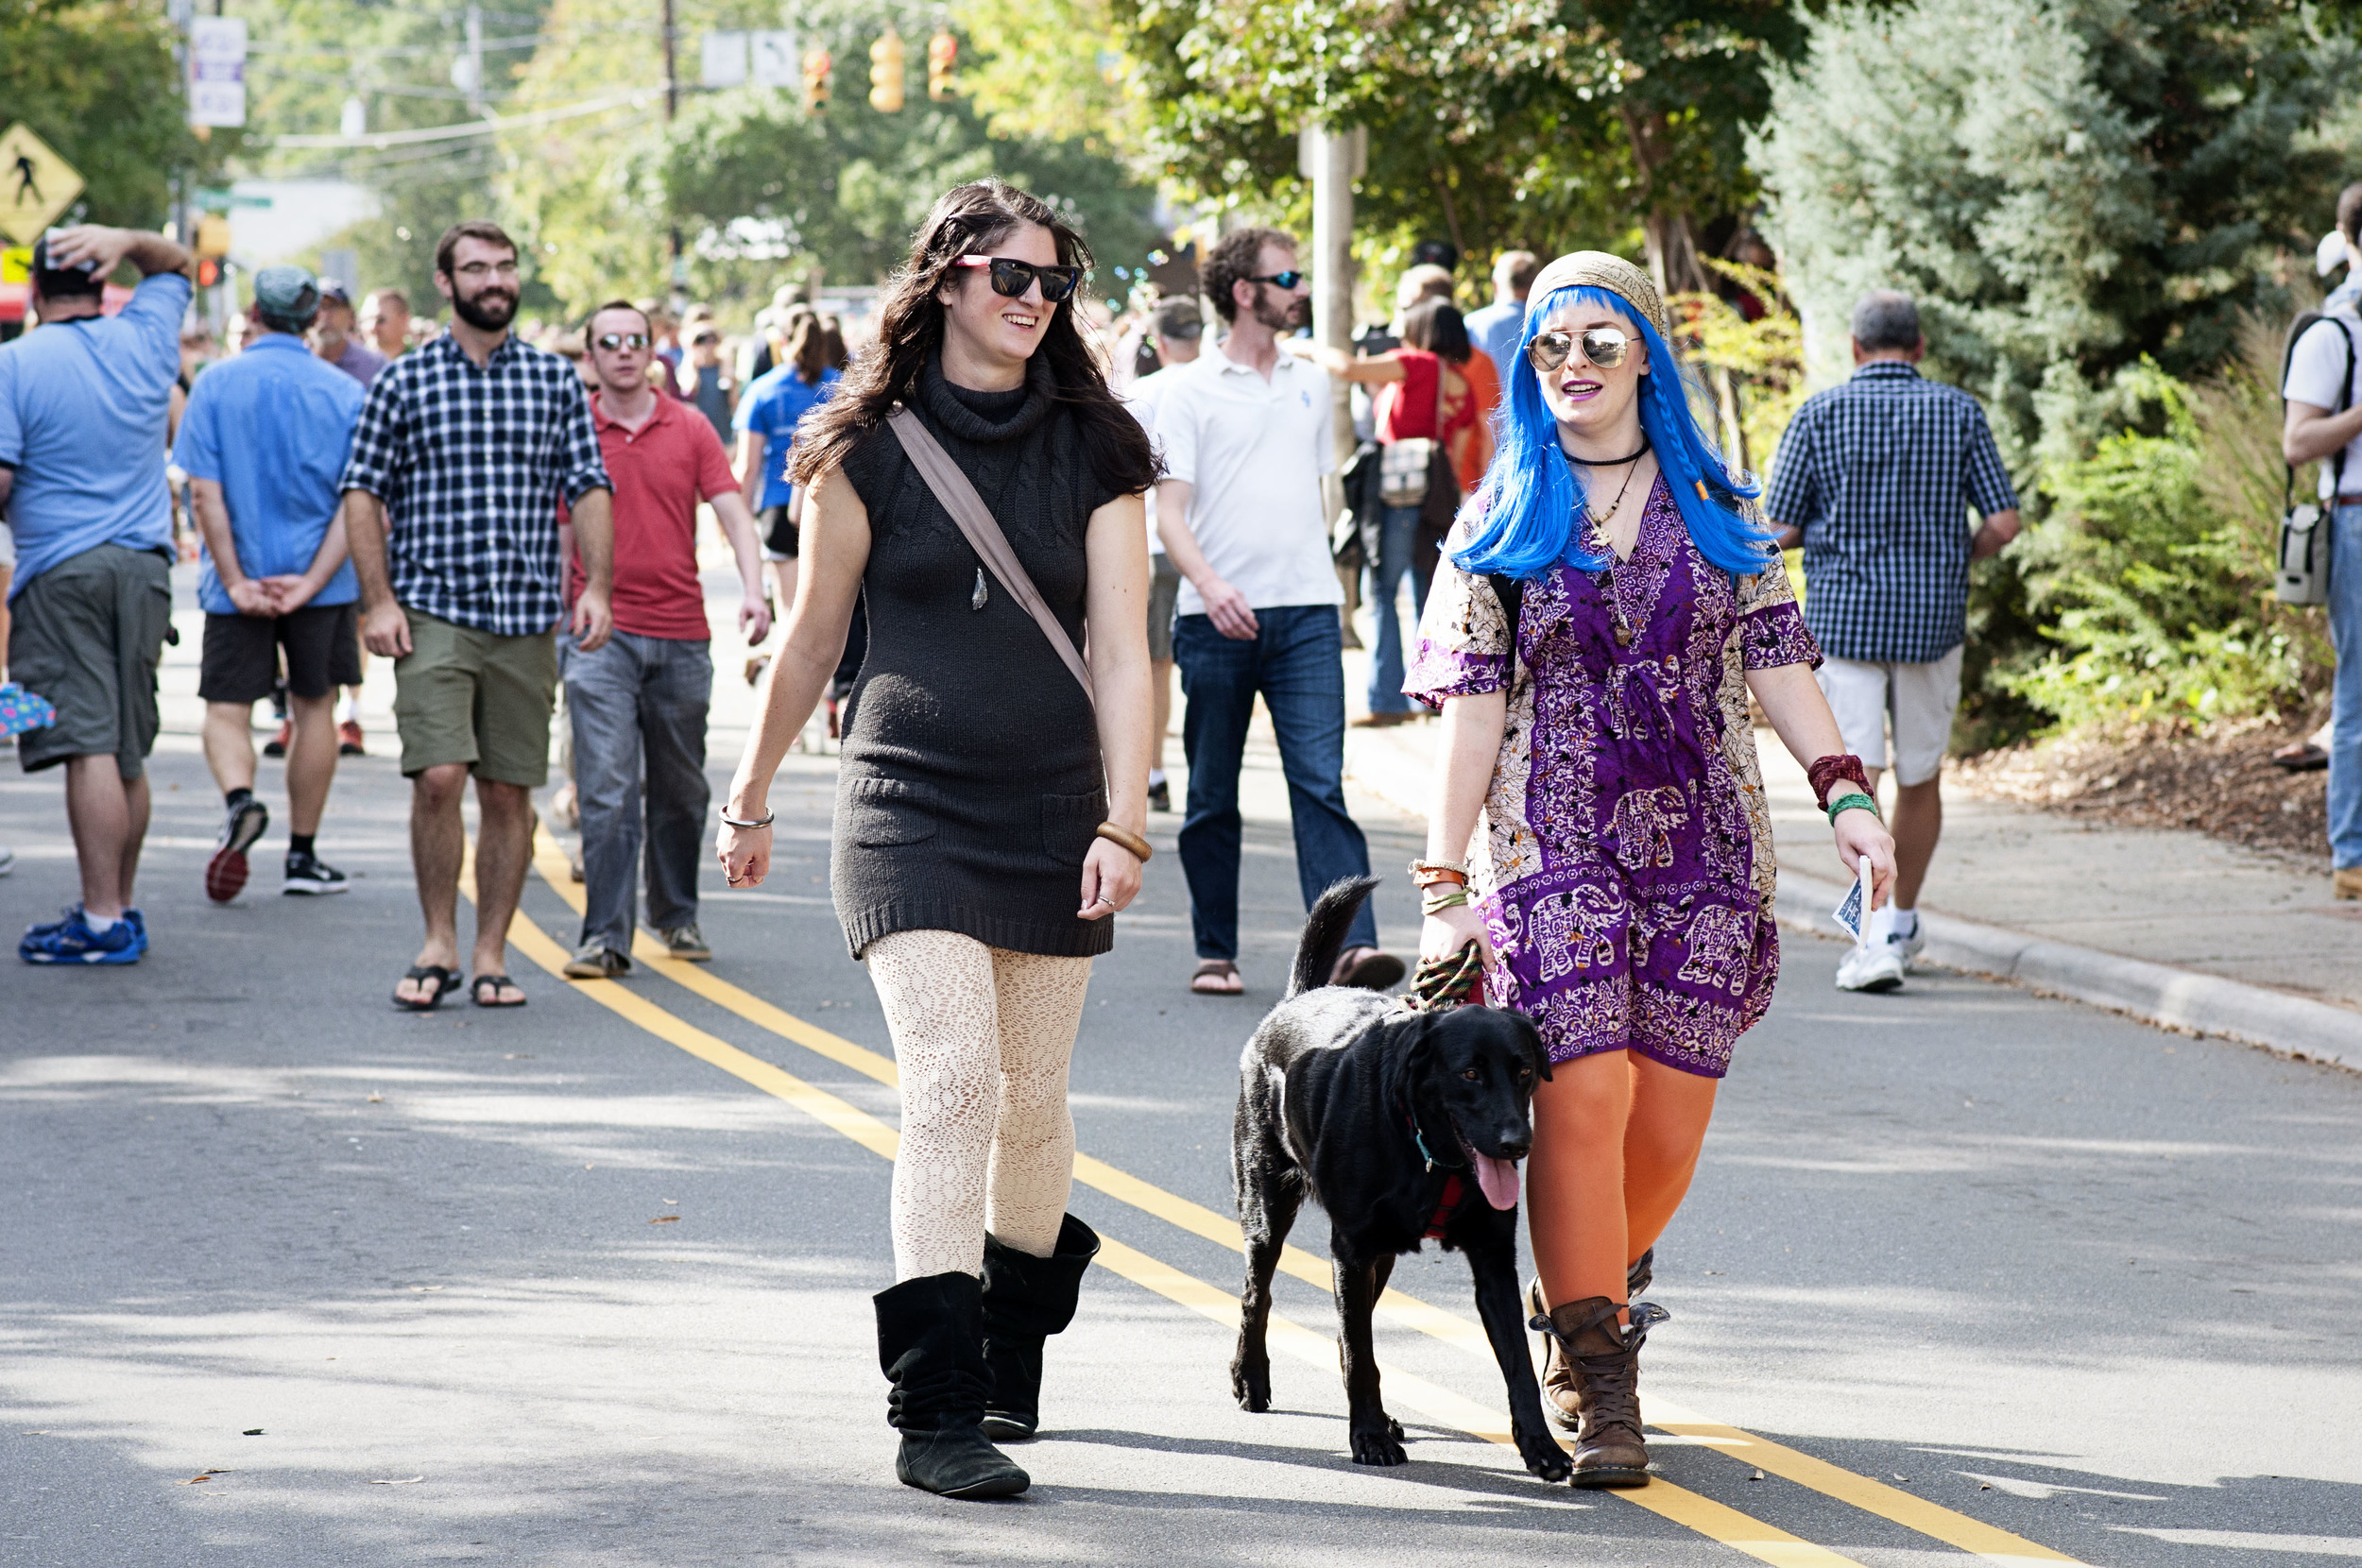 17th annual Carrboro Music Festival - Carrboro, NC. More than 180 free live performances.